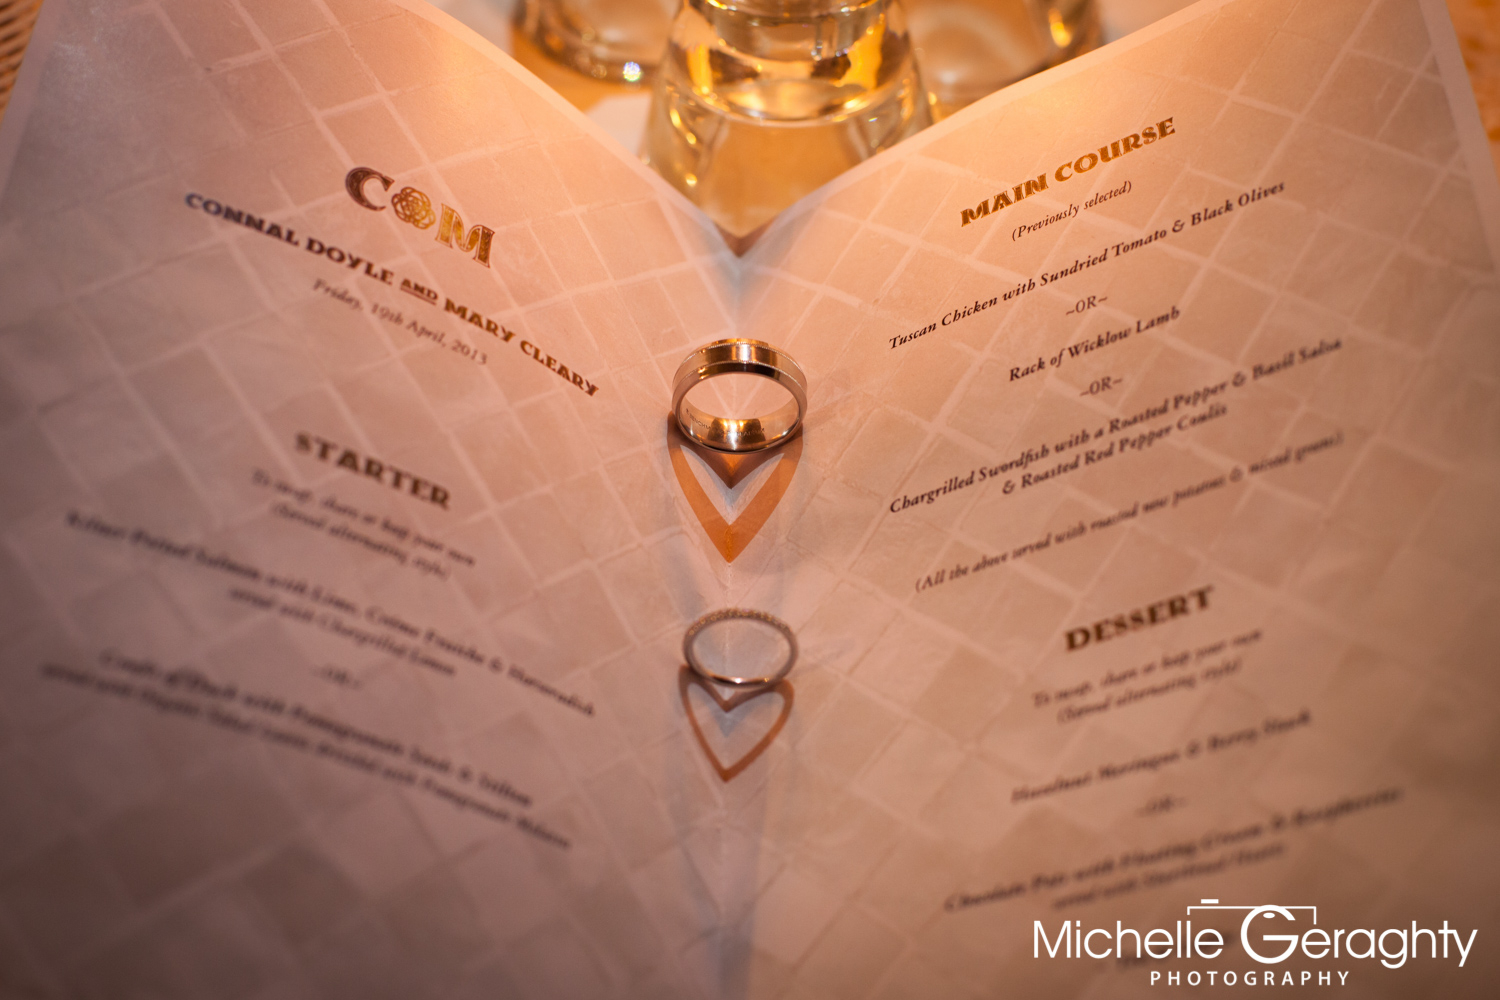 1890-Michelle Geraghty Photography_Mary & Connal-IMG_4601.jpg